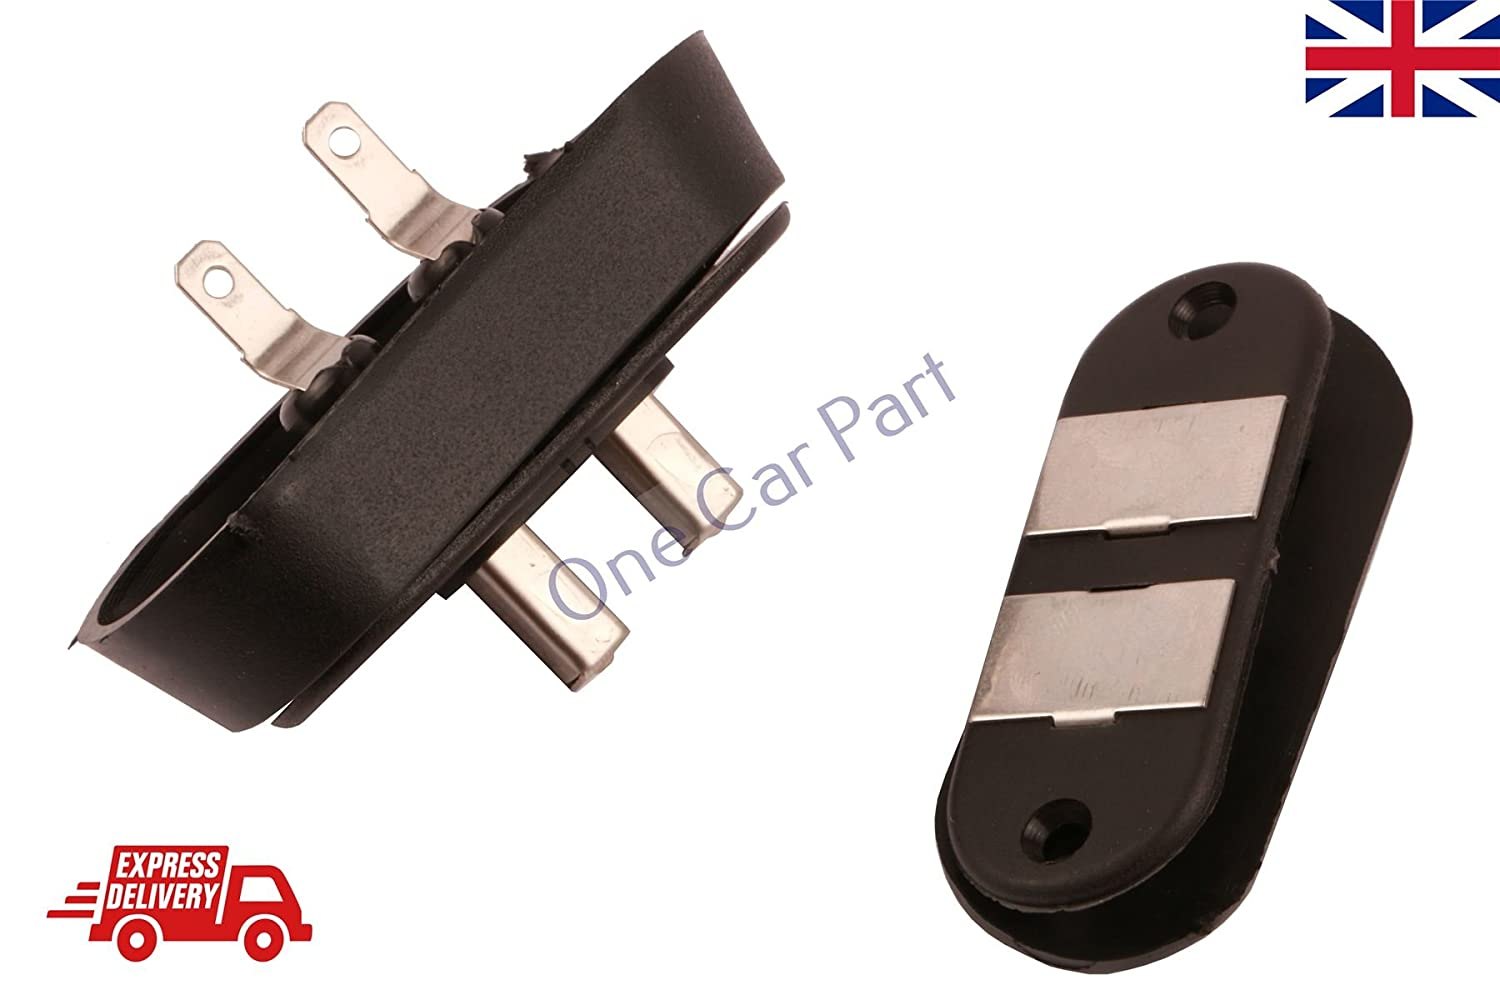 Black Sliding Door Contact Switch For Car Alarm Van Central Locking Systems PARLEX